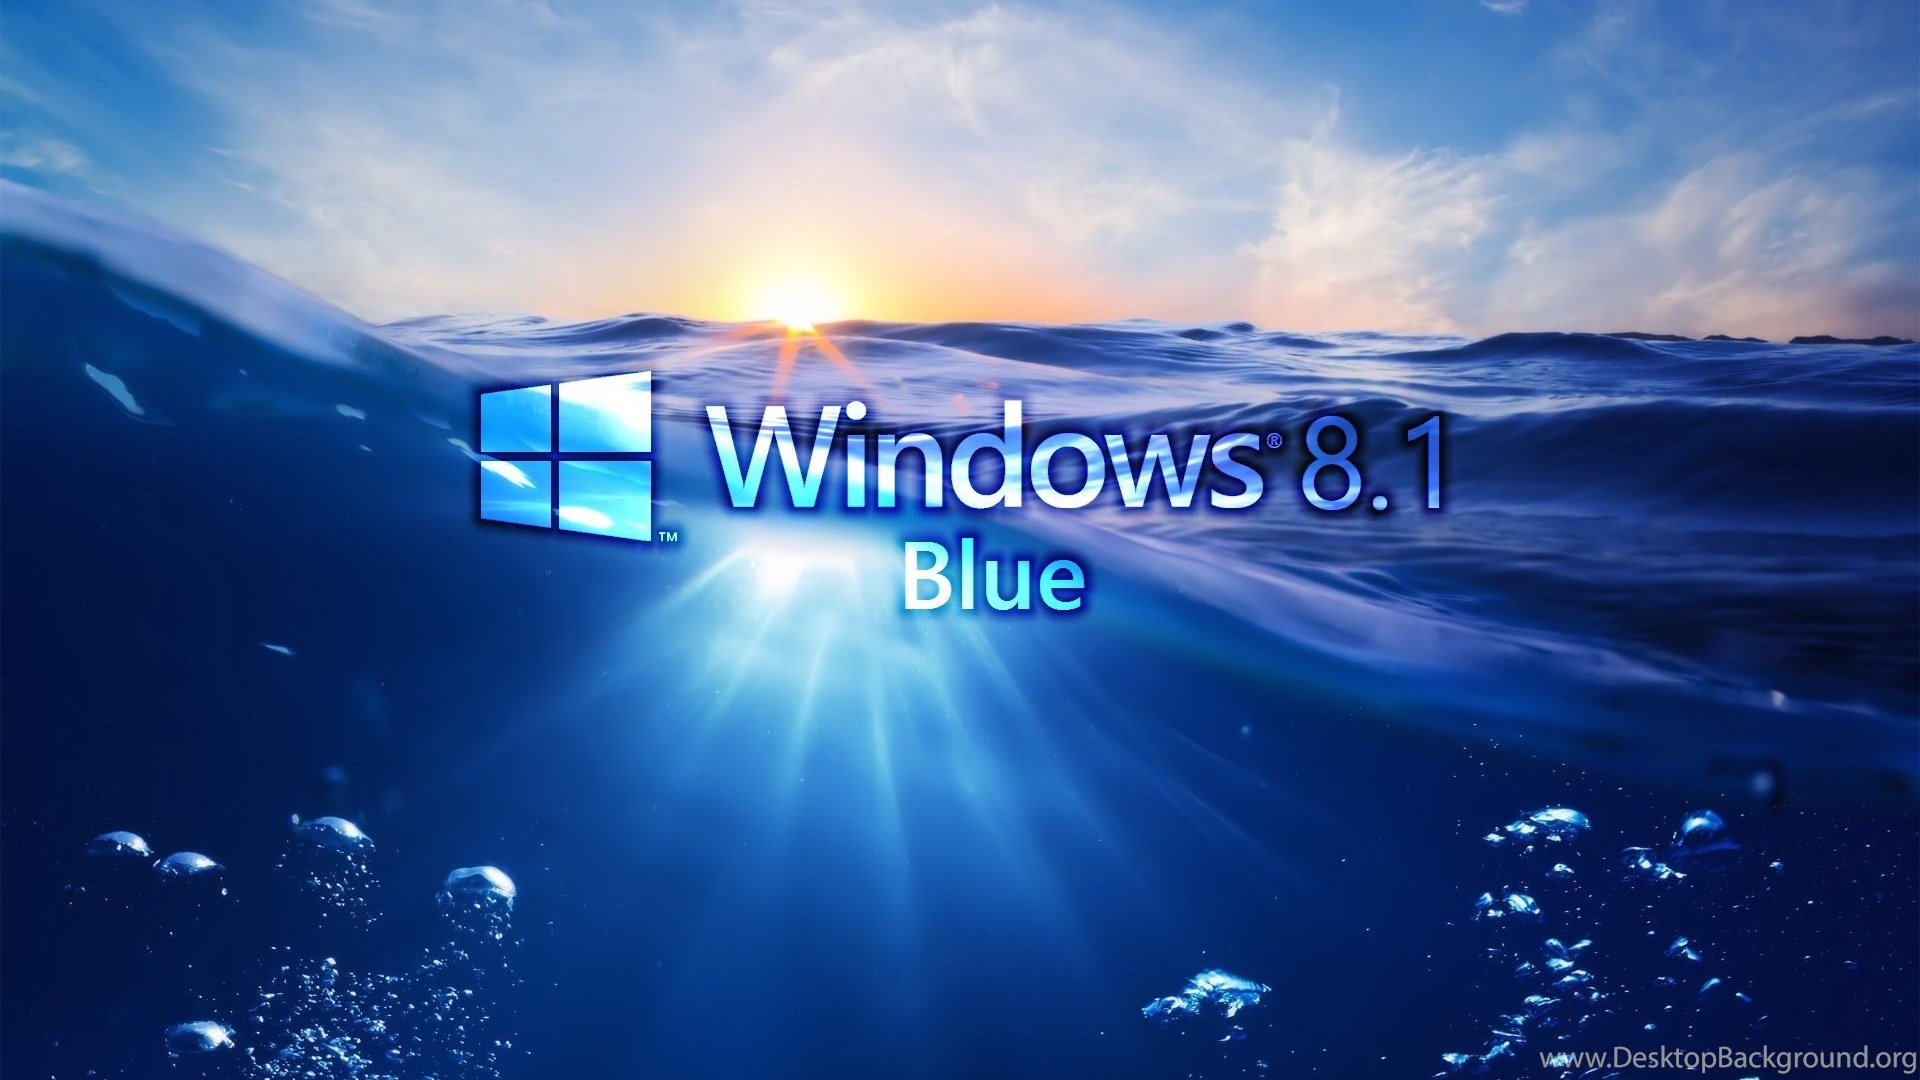 HD Wallpapers For Windows 81 Desktop Background